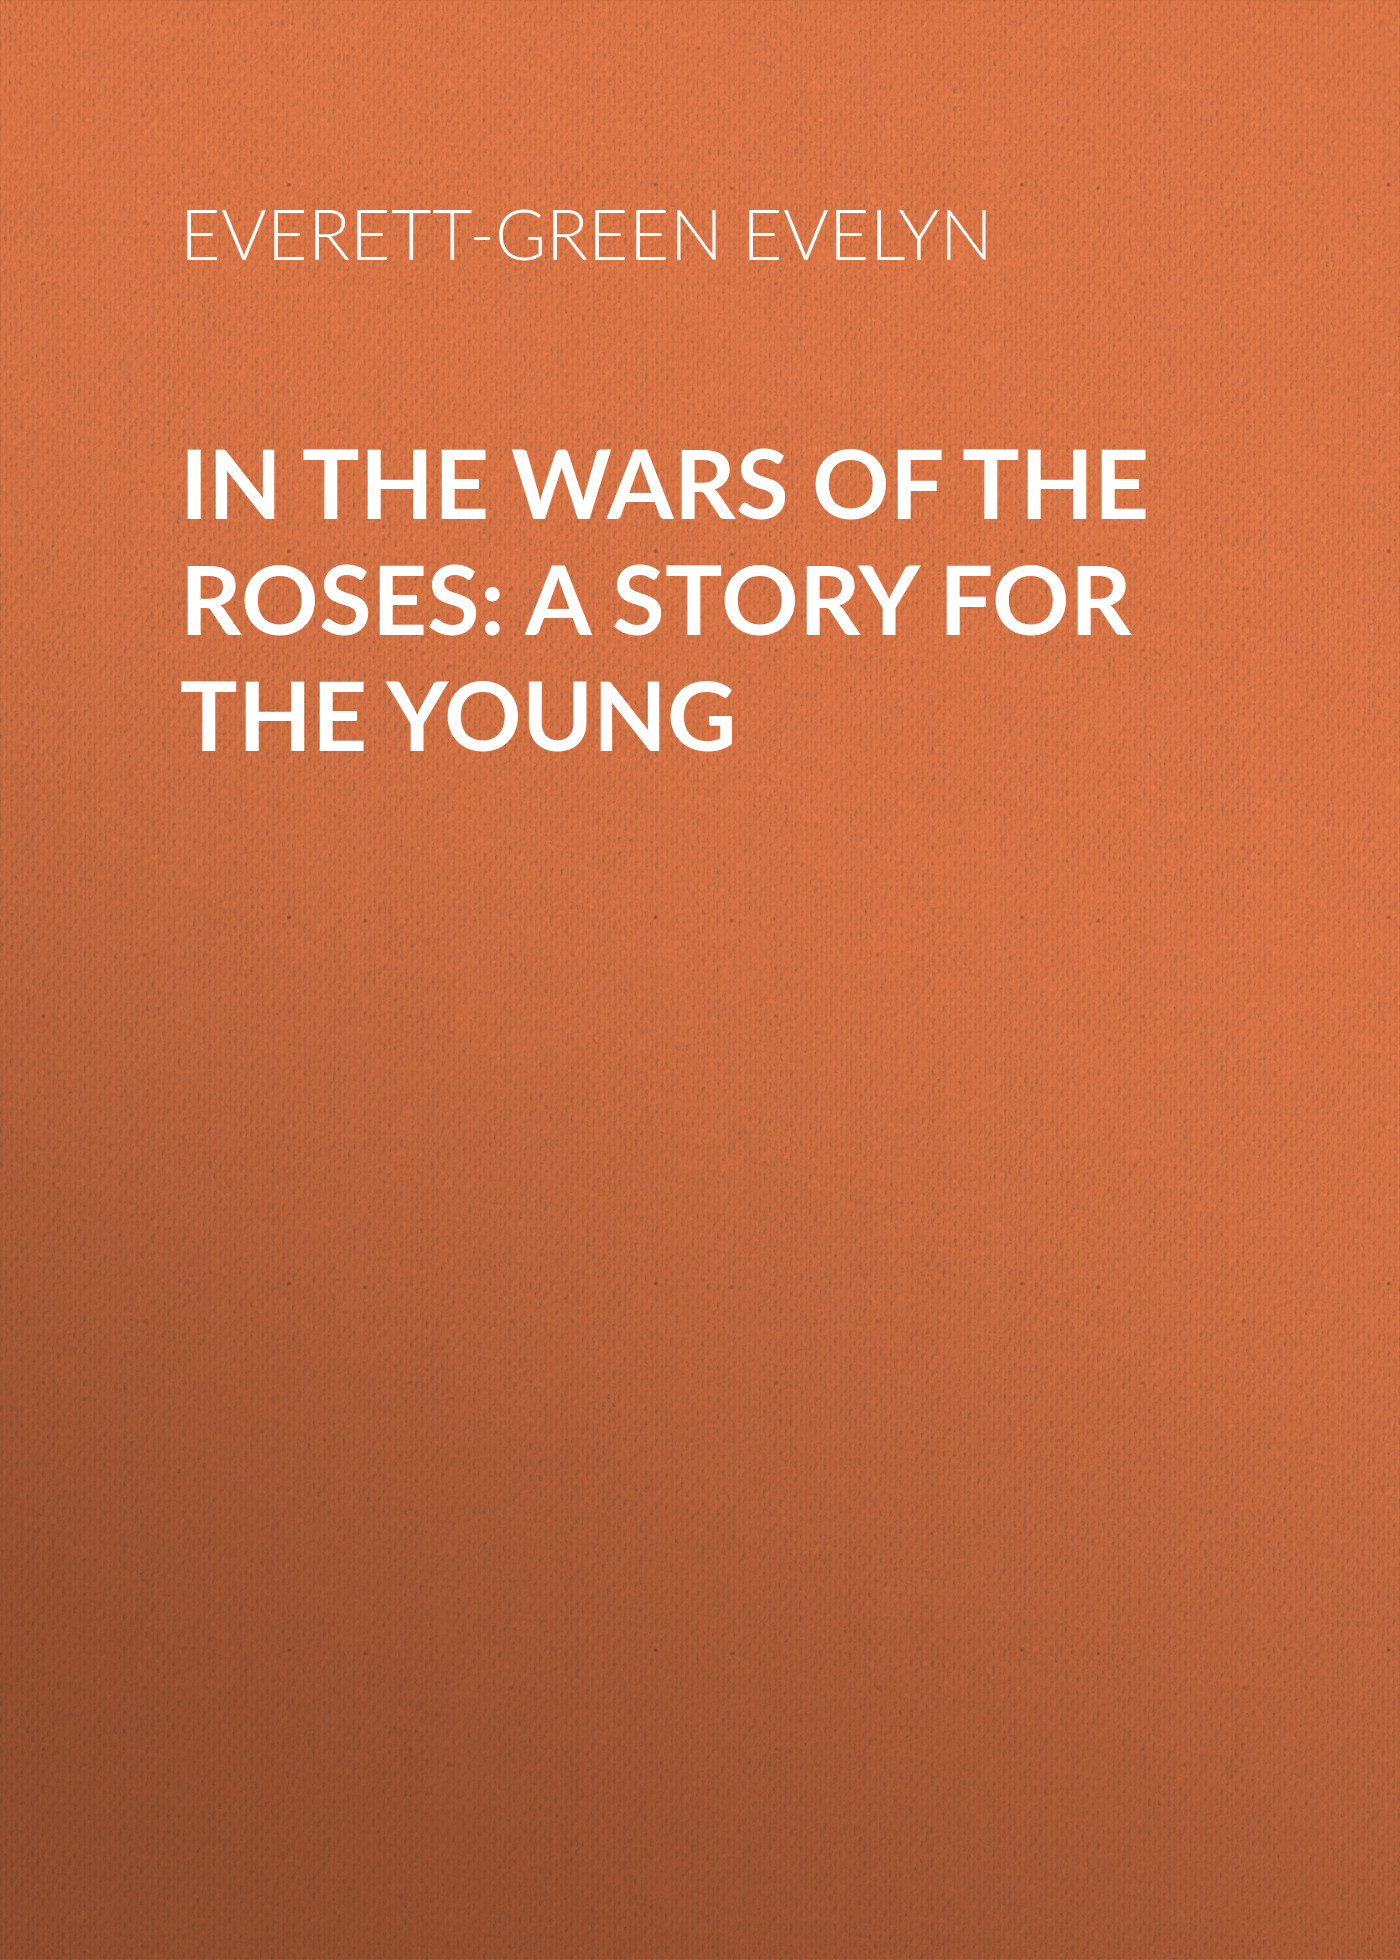 Купить Everett-Green Evelyn In the Wars of the Roses: A Story for the Young в интернет-магазине дешево